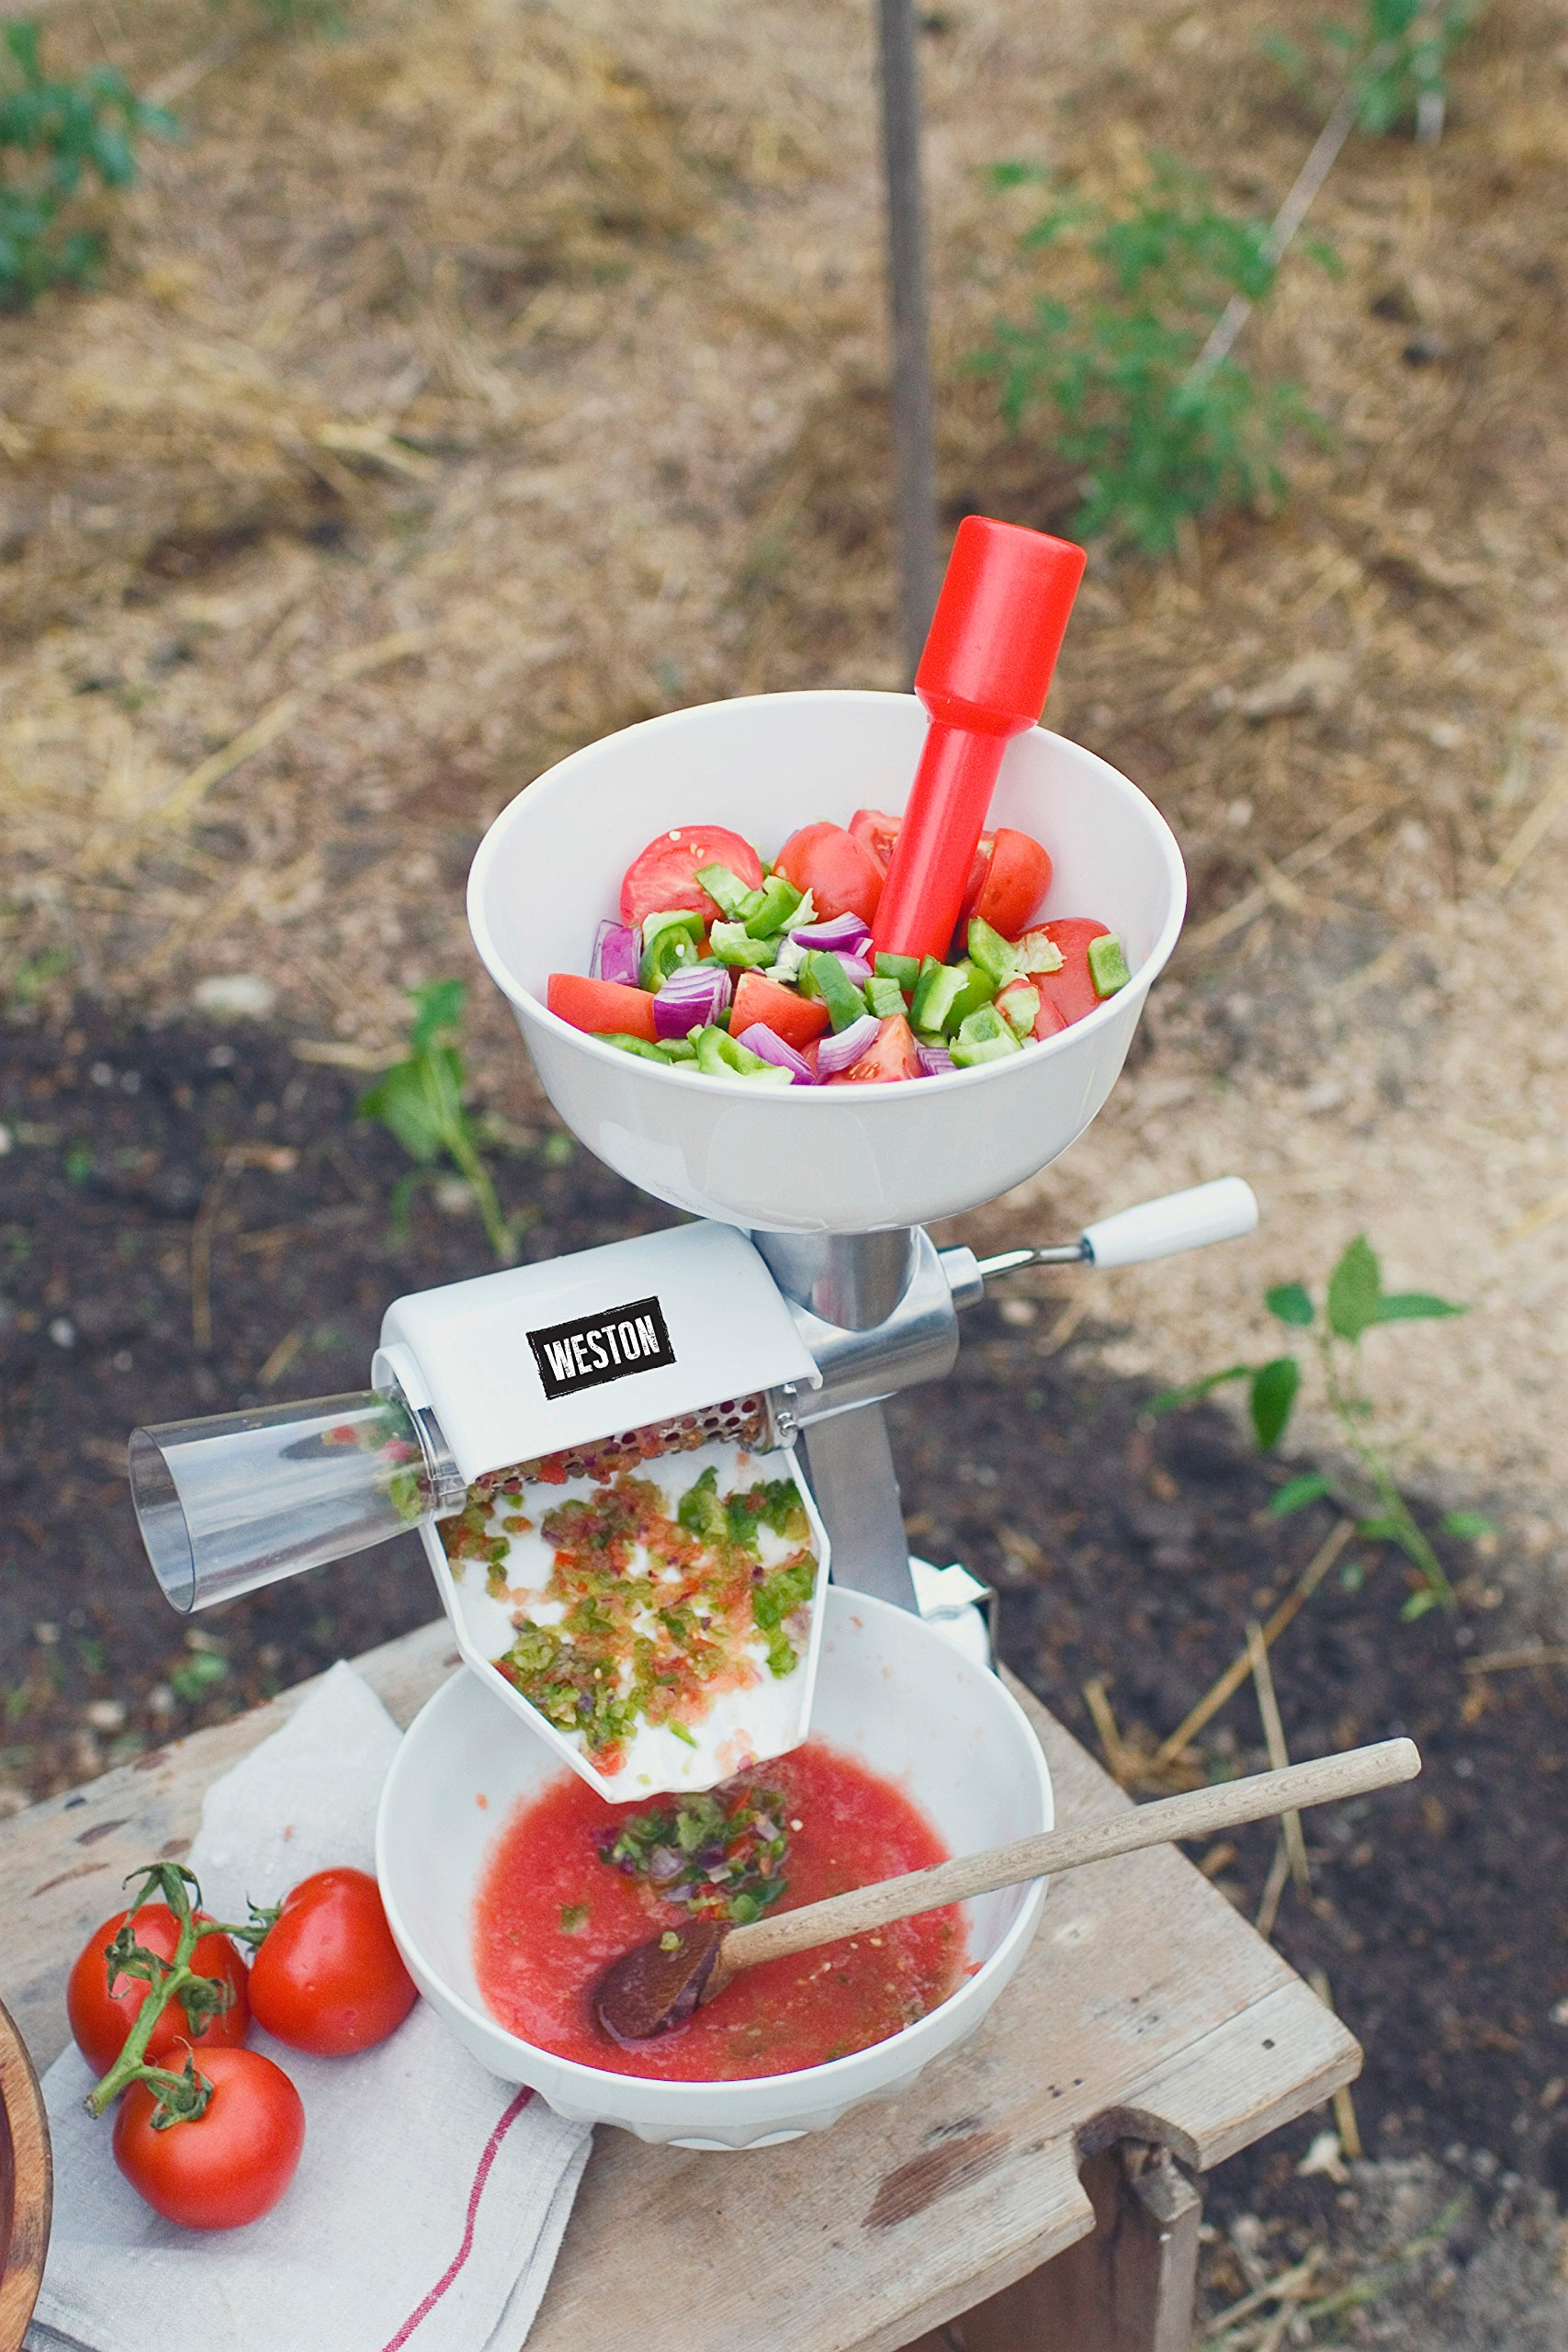 Weston Food Strainer and Sauce Maker for Tomato, Fresh Fruits and Vegetables (07-0801) by Weston (Image #5)